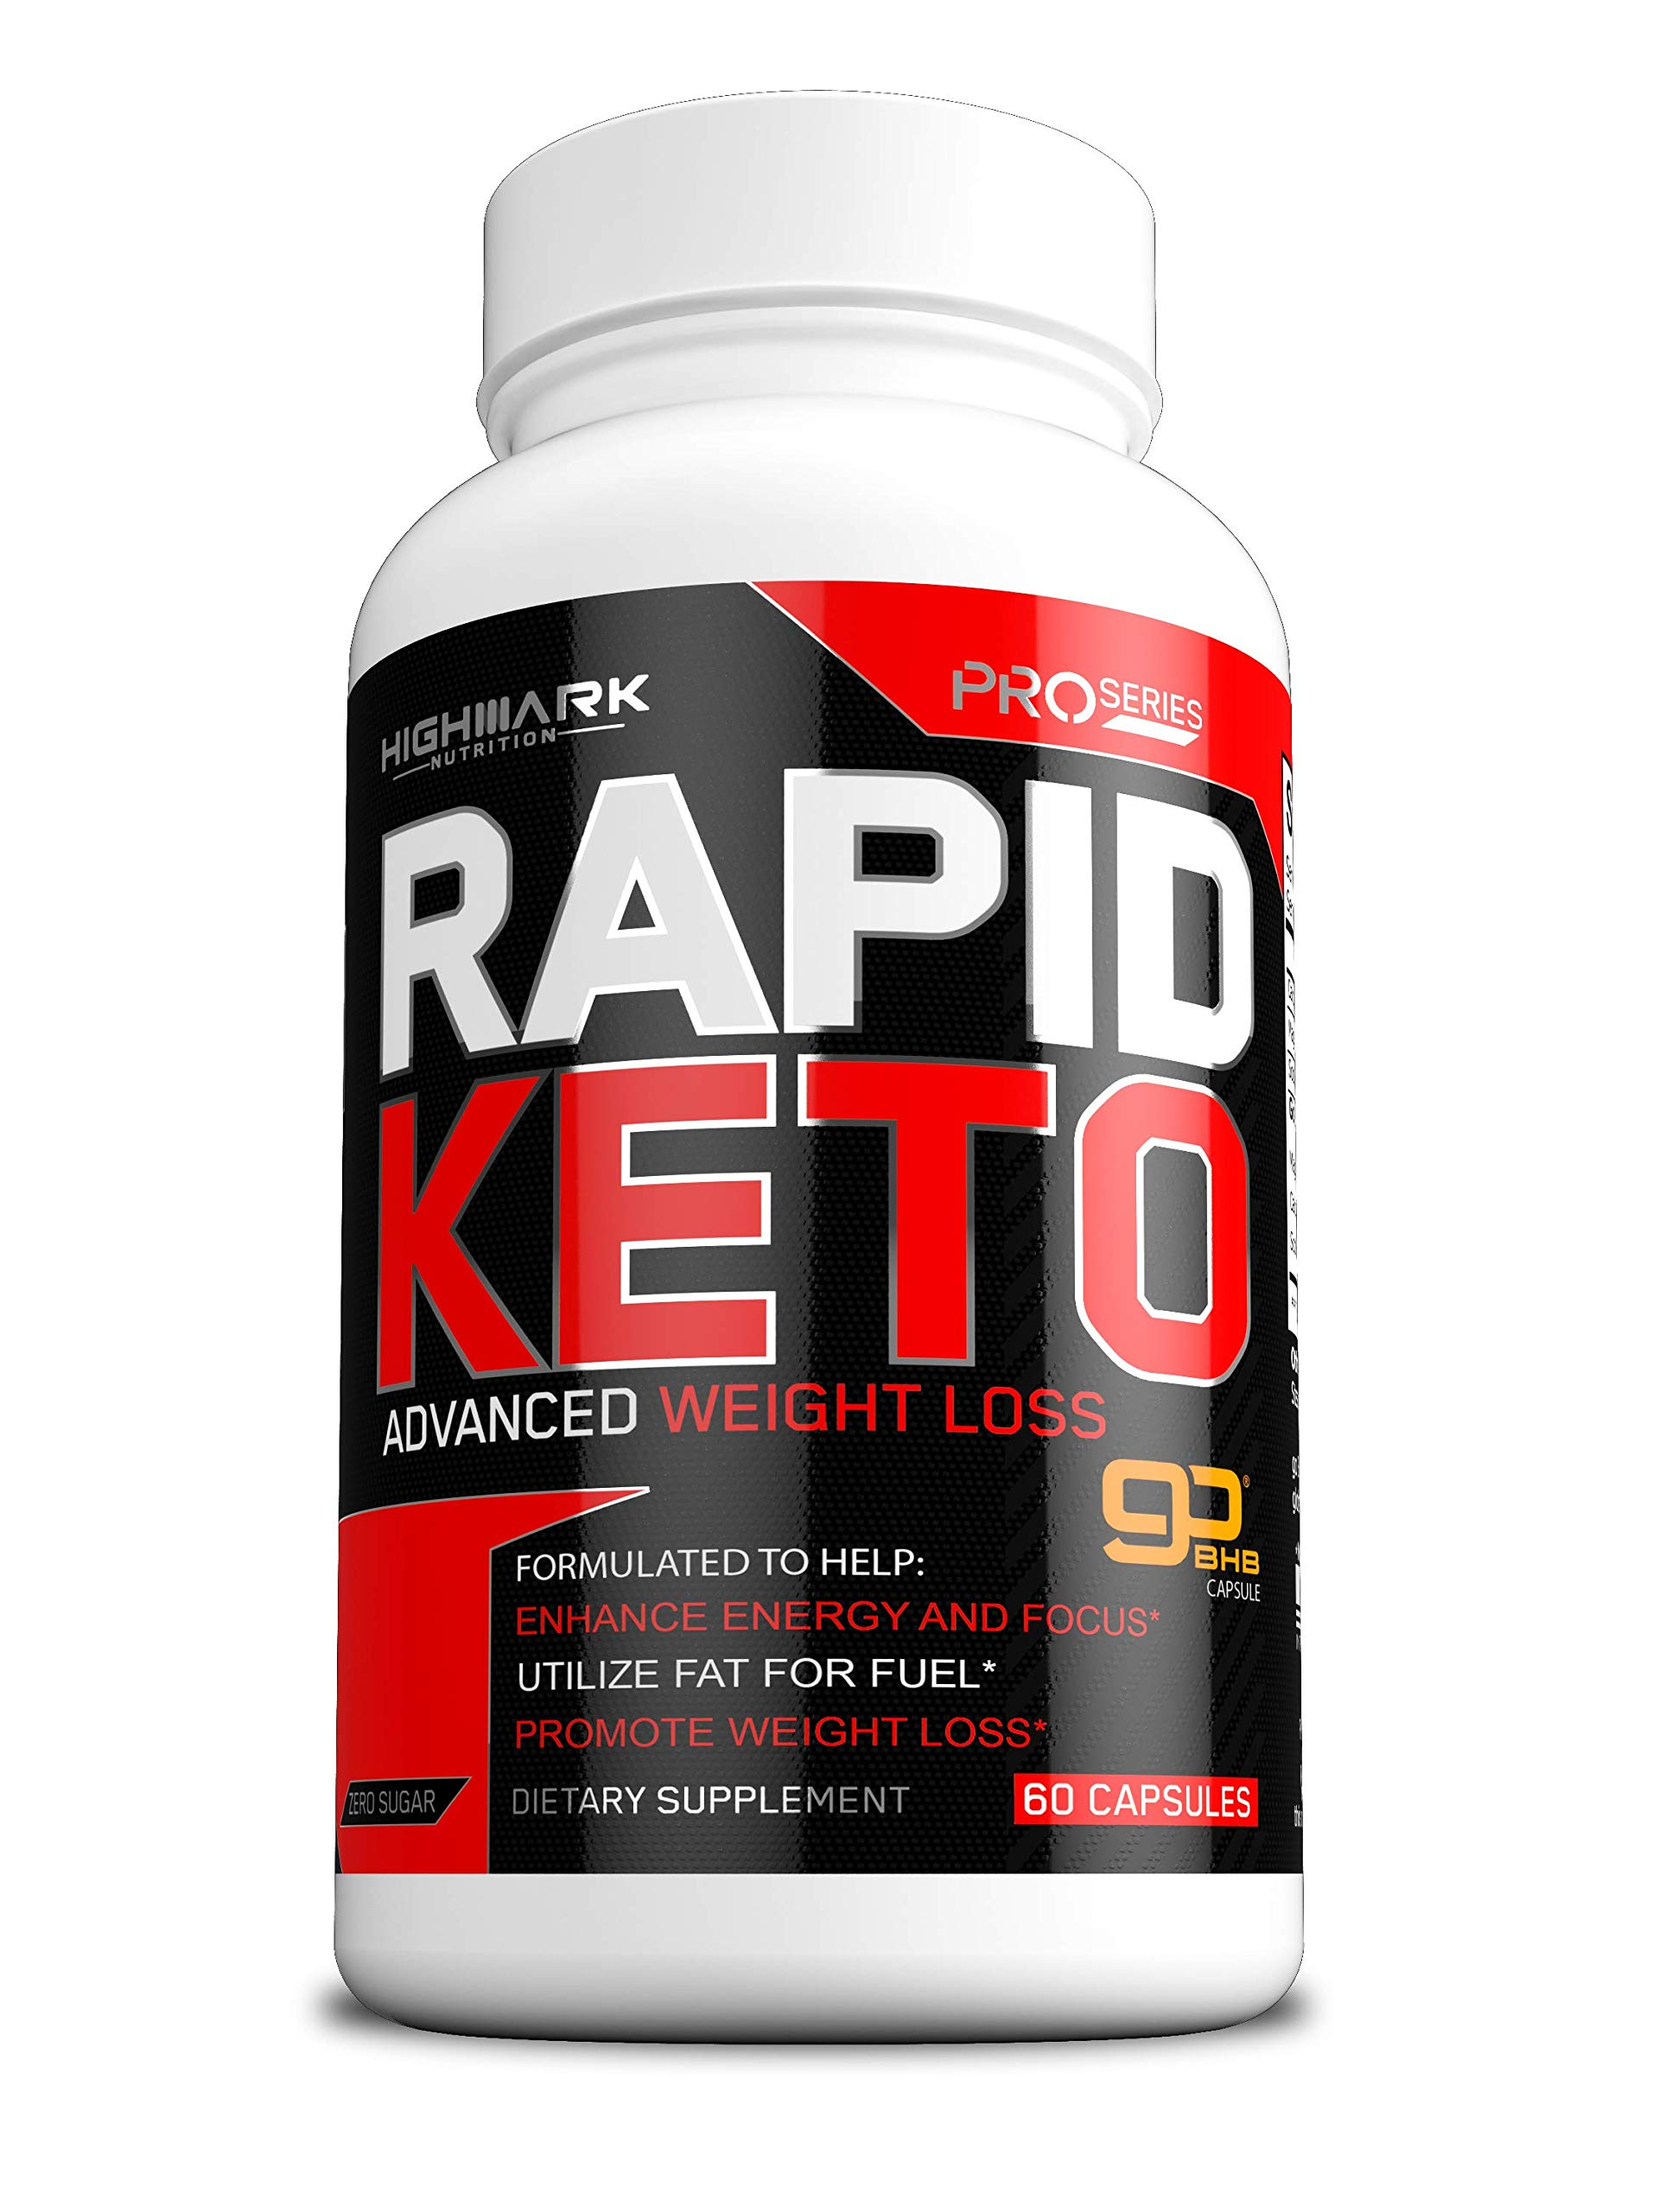 Rapid Keto Diet Pills | Advanced Ketogenic Diet Weight Loss Supplement | BHB Salts Exogenous Ketones Capsules for Men & Women | Fast & Effective Ketosis Diet Fat Burner | Promote Energy & Focus | 60 by HighMark Nutrition (Image #1)